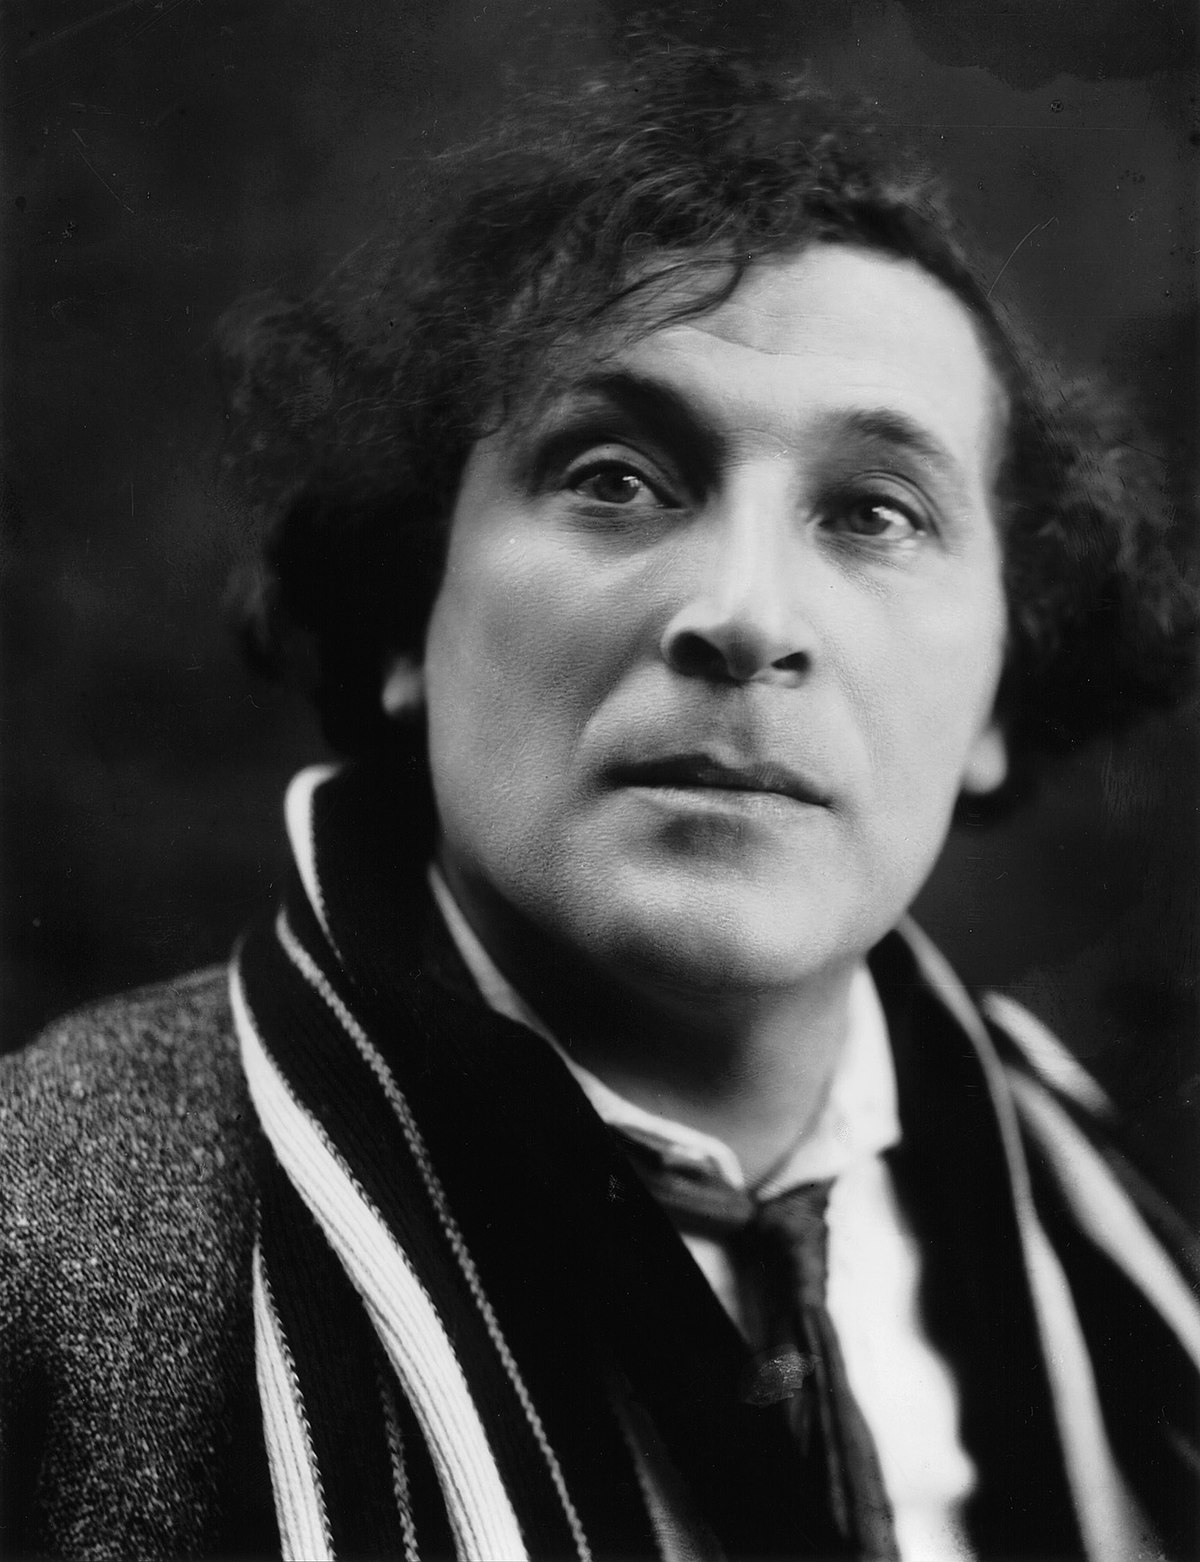 marc chagall happy birthday : marc chagall happy birthday :  marc chagall works en 2020/2021